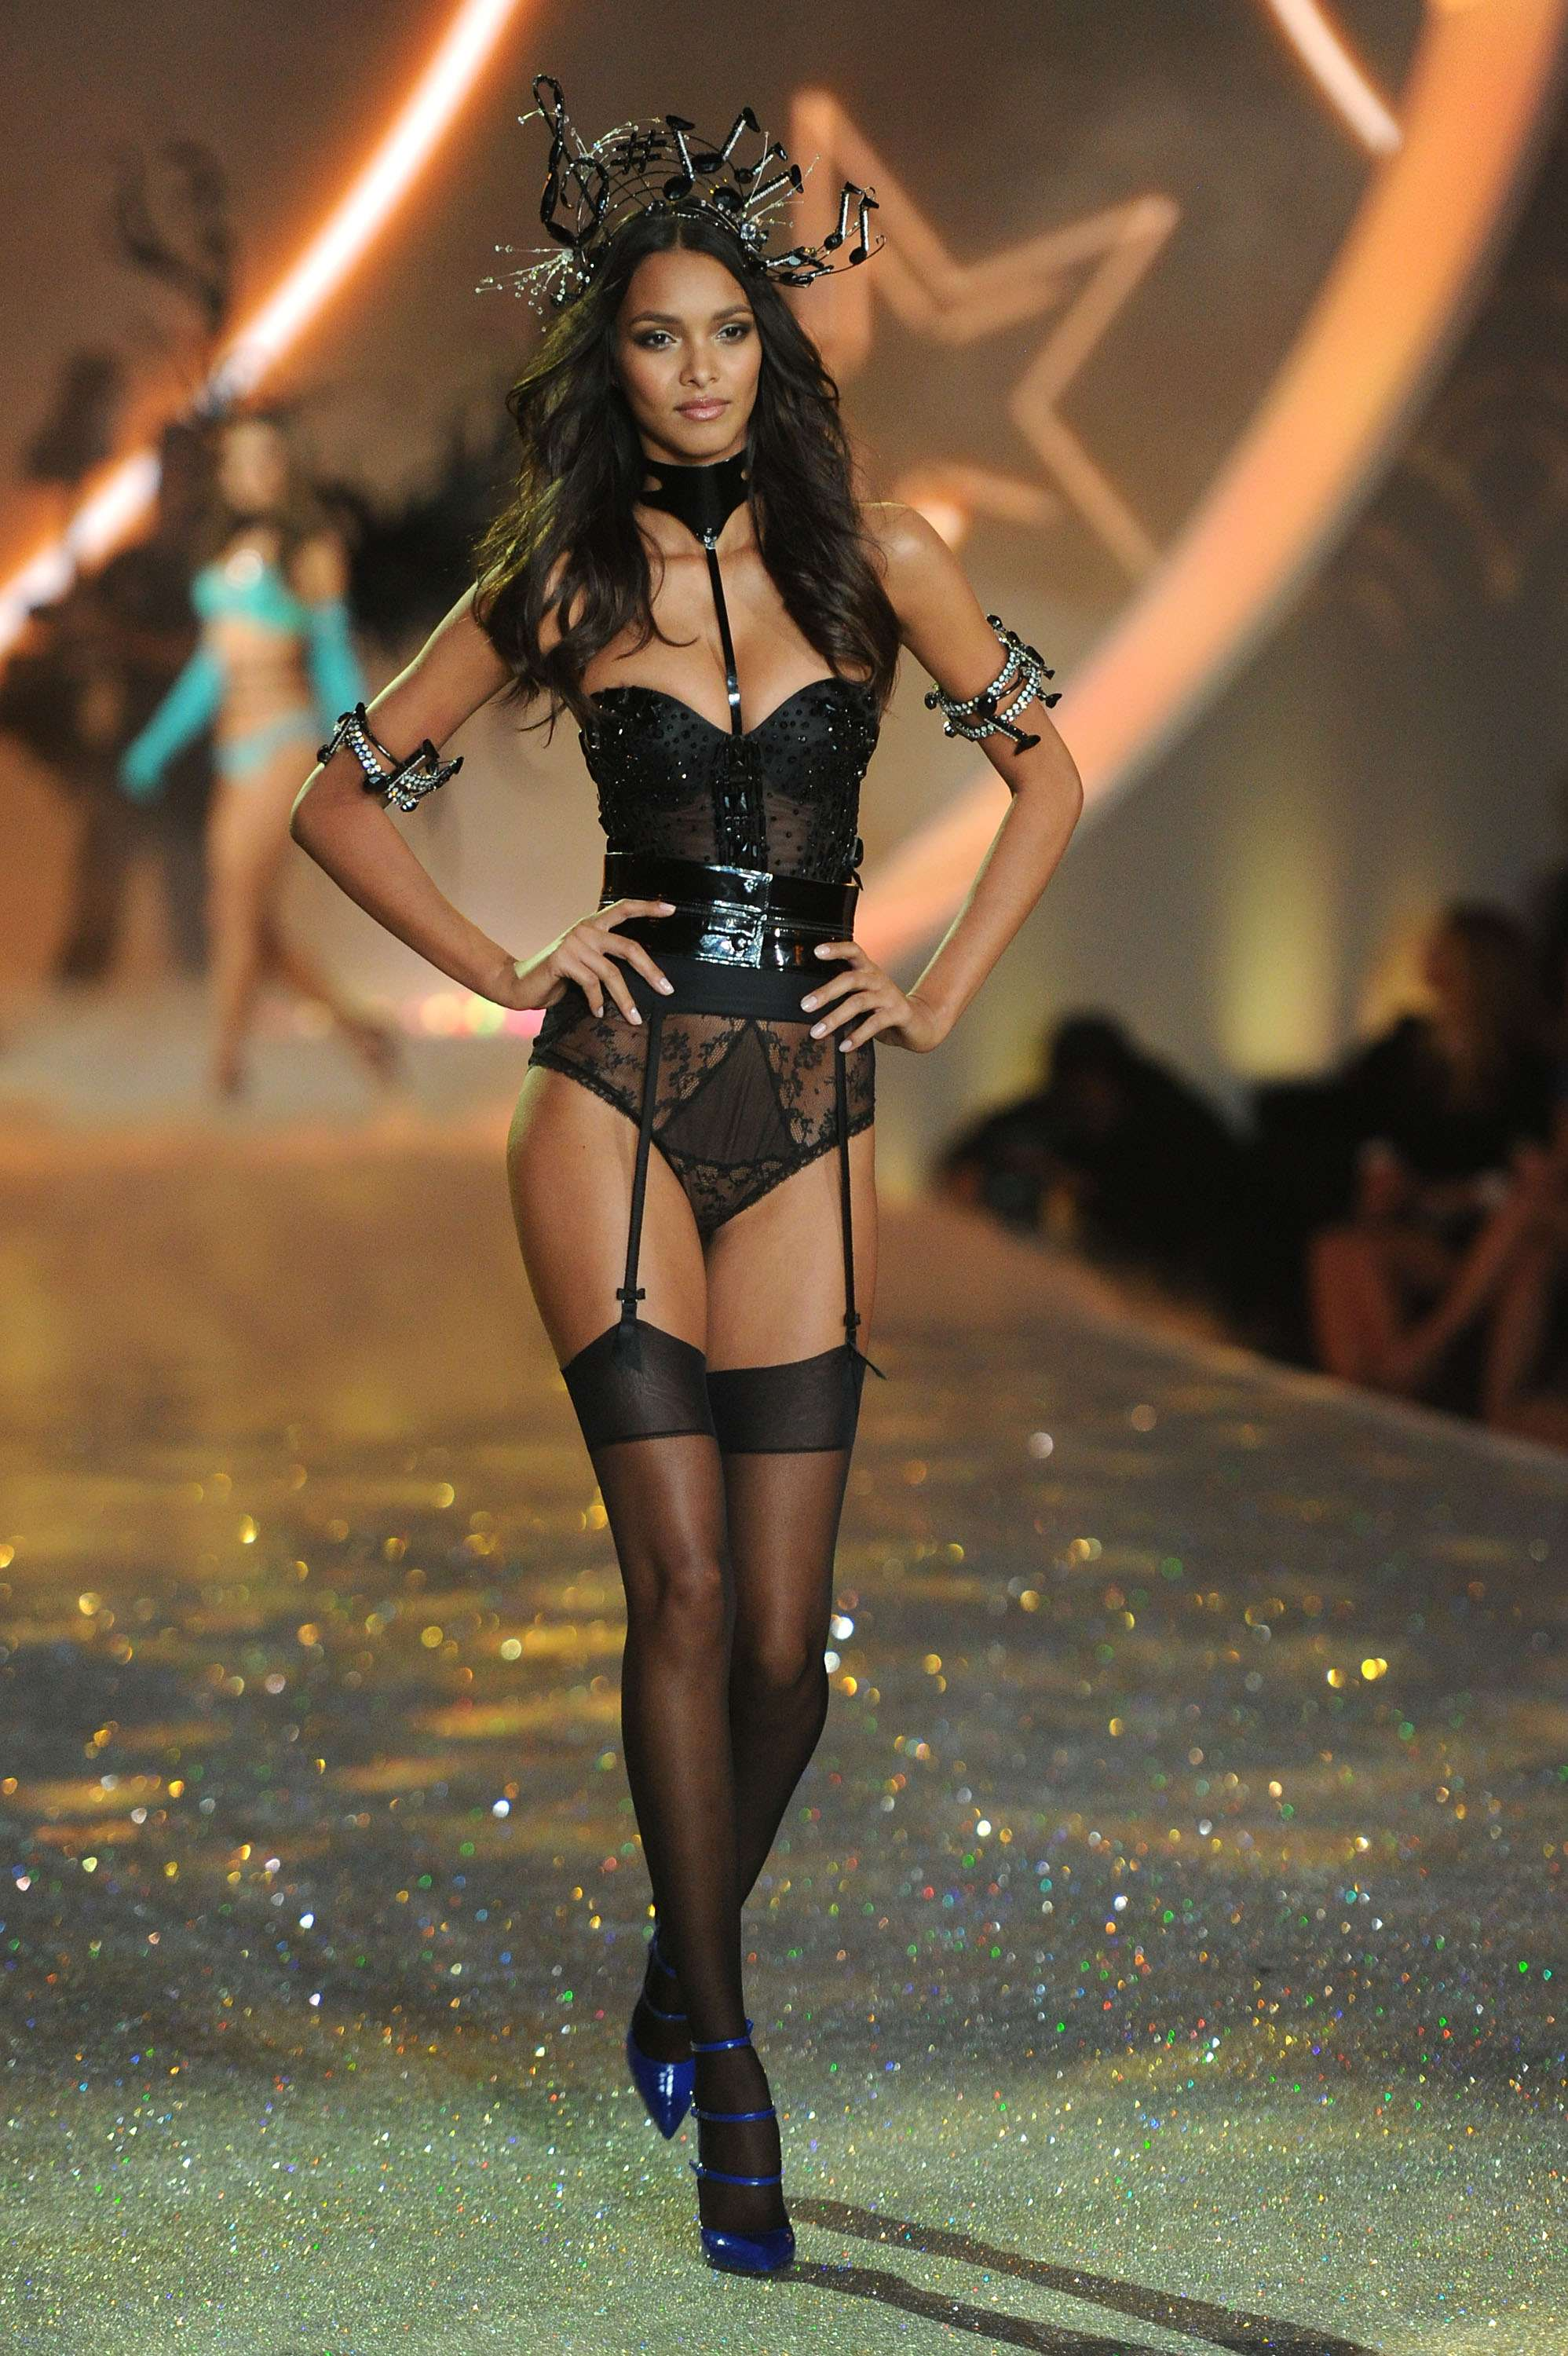 Victoria Secret Foto: Getty Images